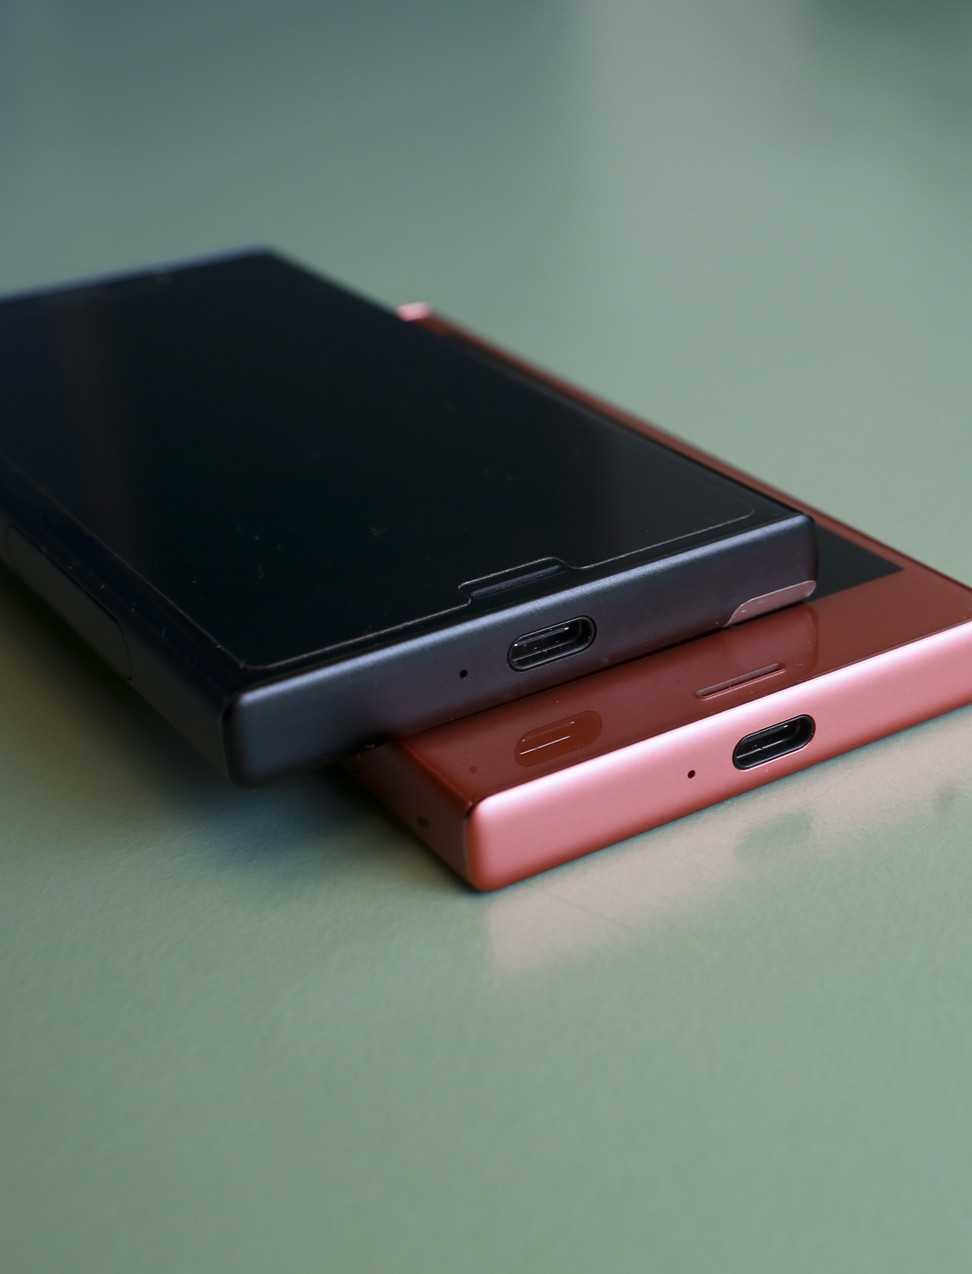 Sony Xperia XZ1 Compact review – worthy successor to Z5 and